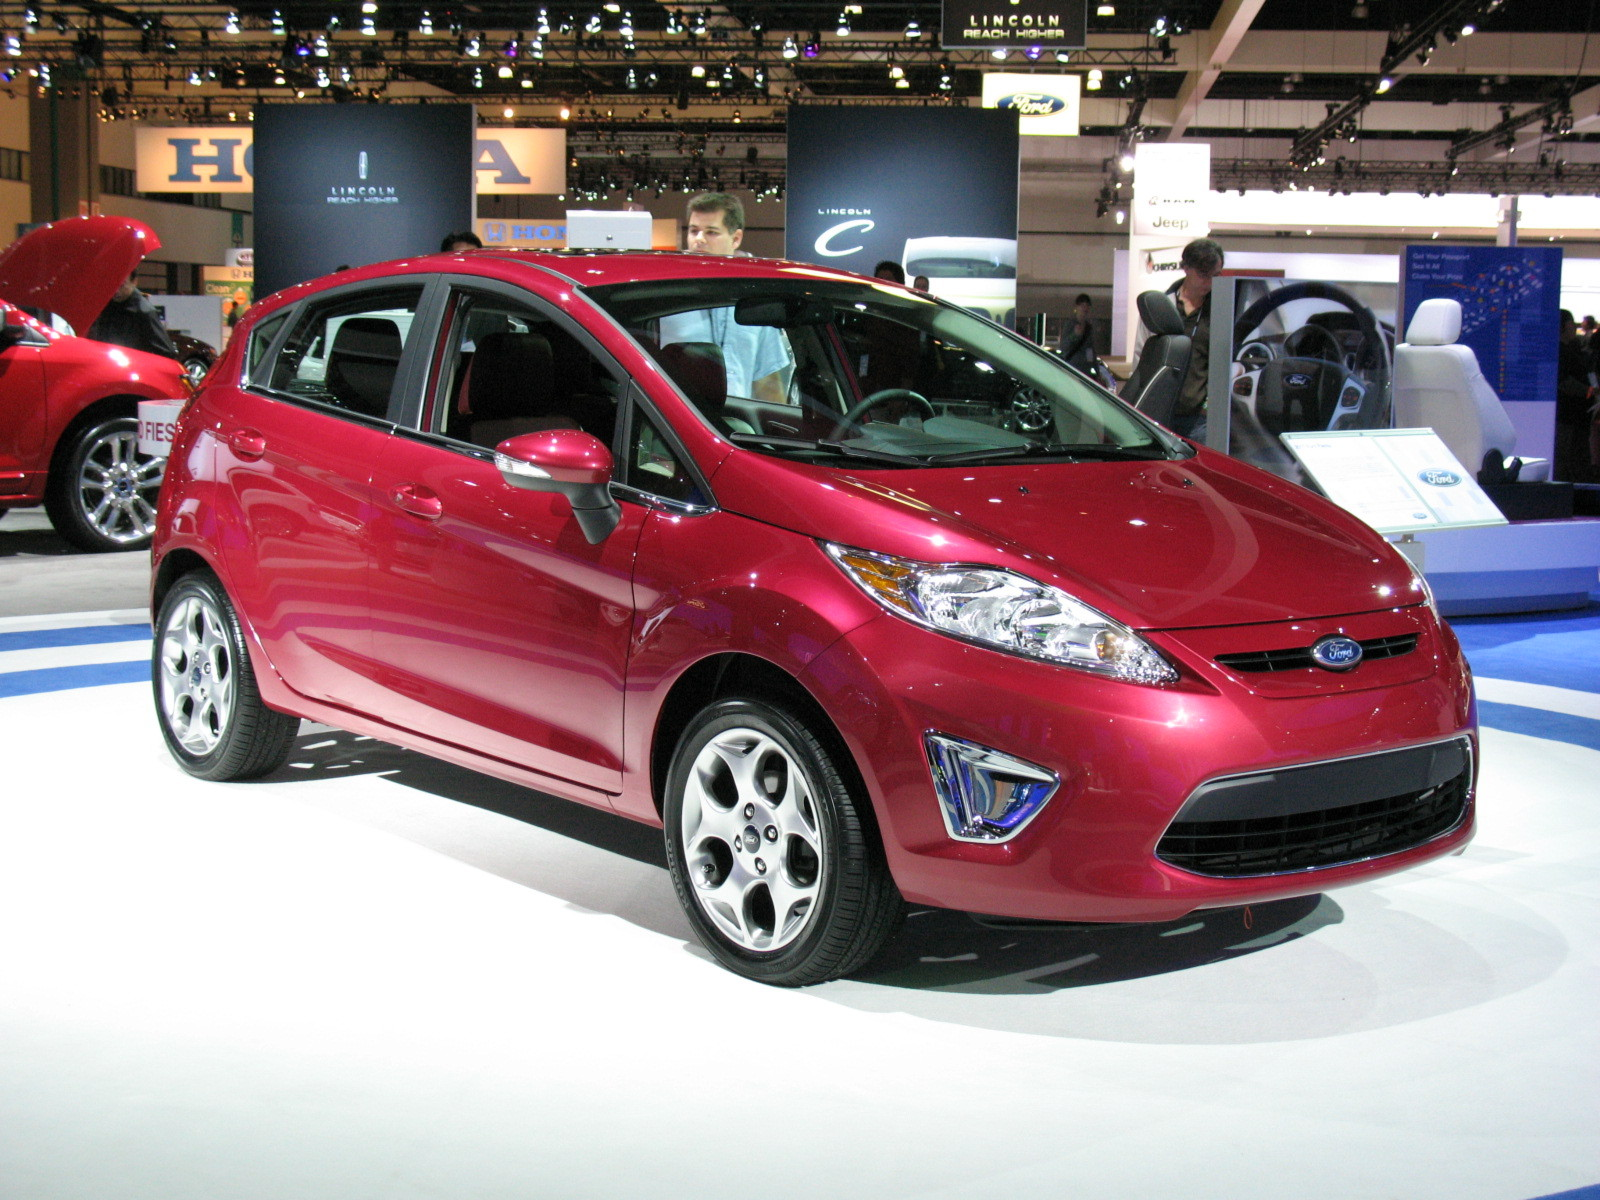 2011 Ford Fiesta Taking Ford s Newest Small Car For a Spin